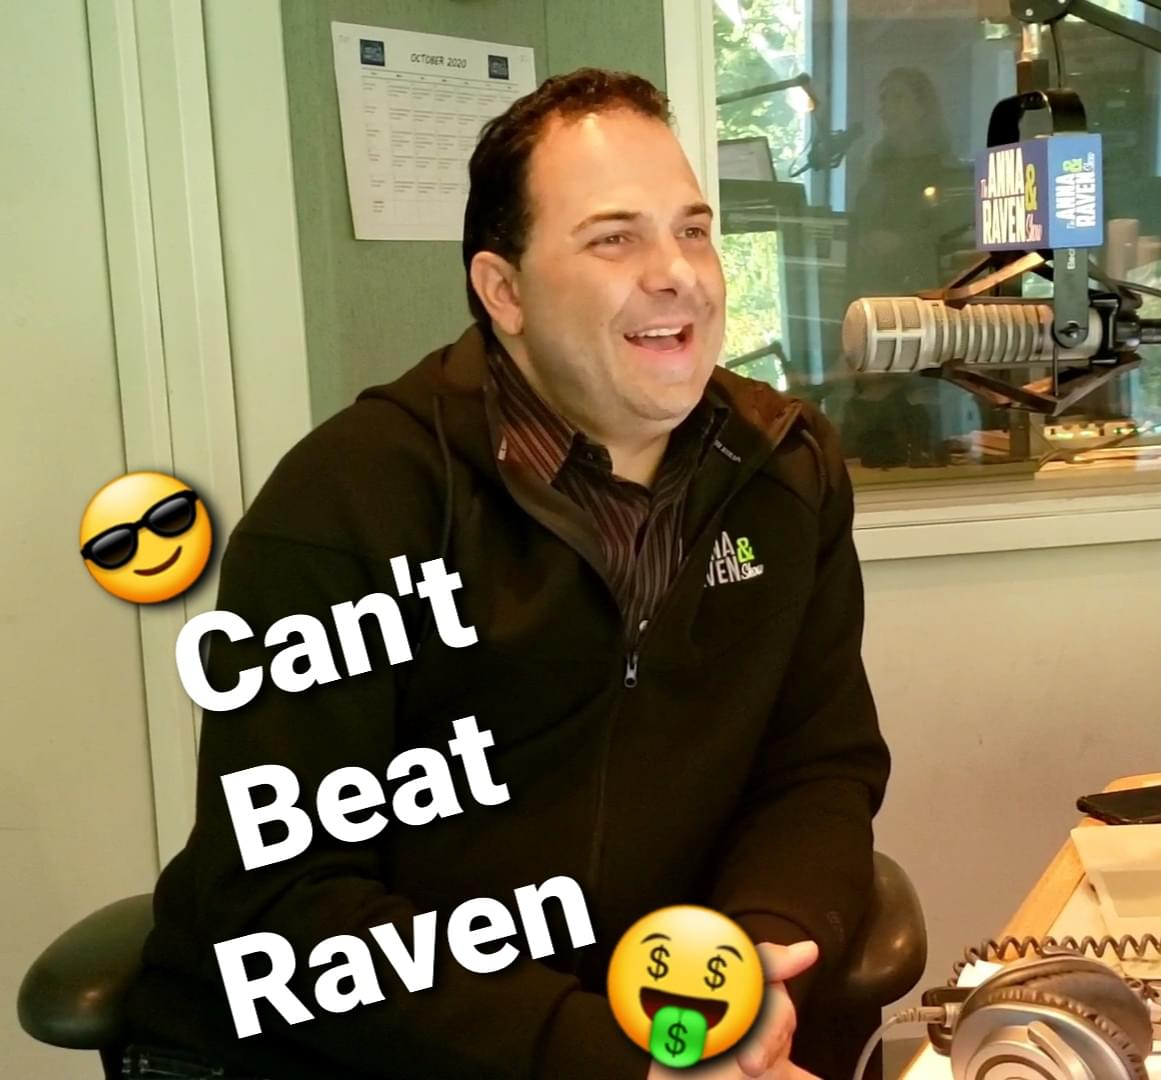 Can't Beat Raven!